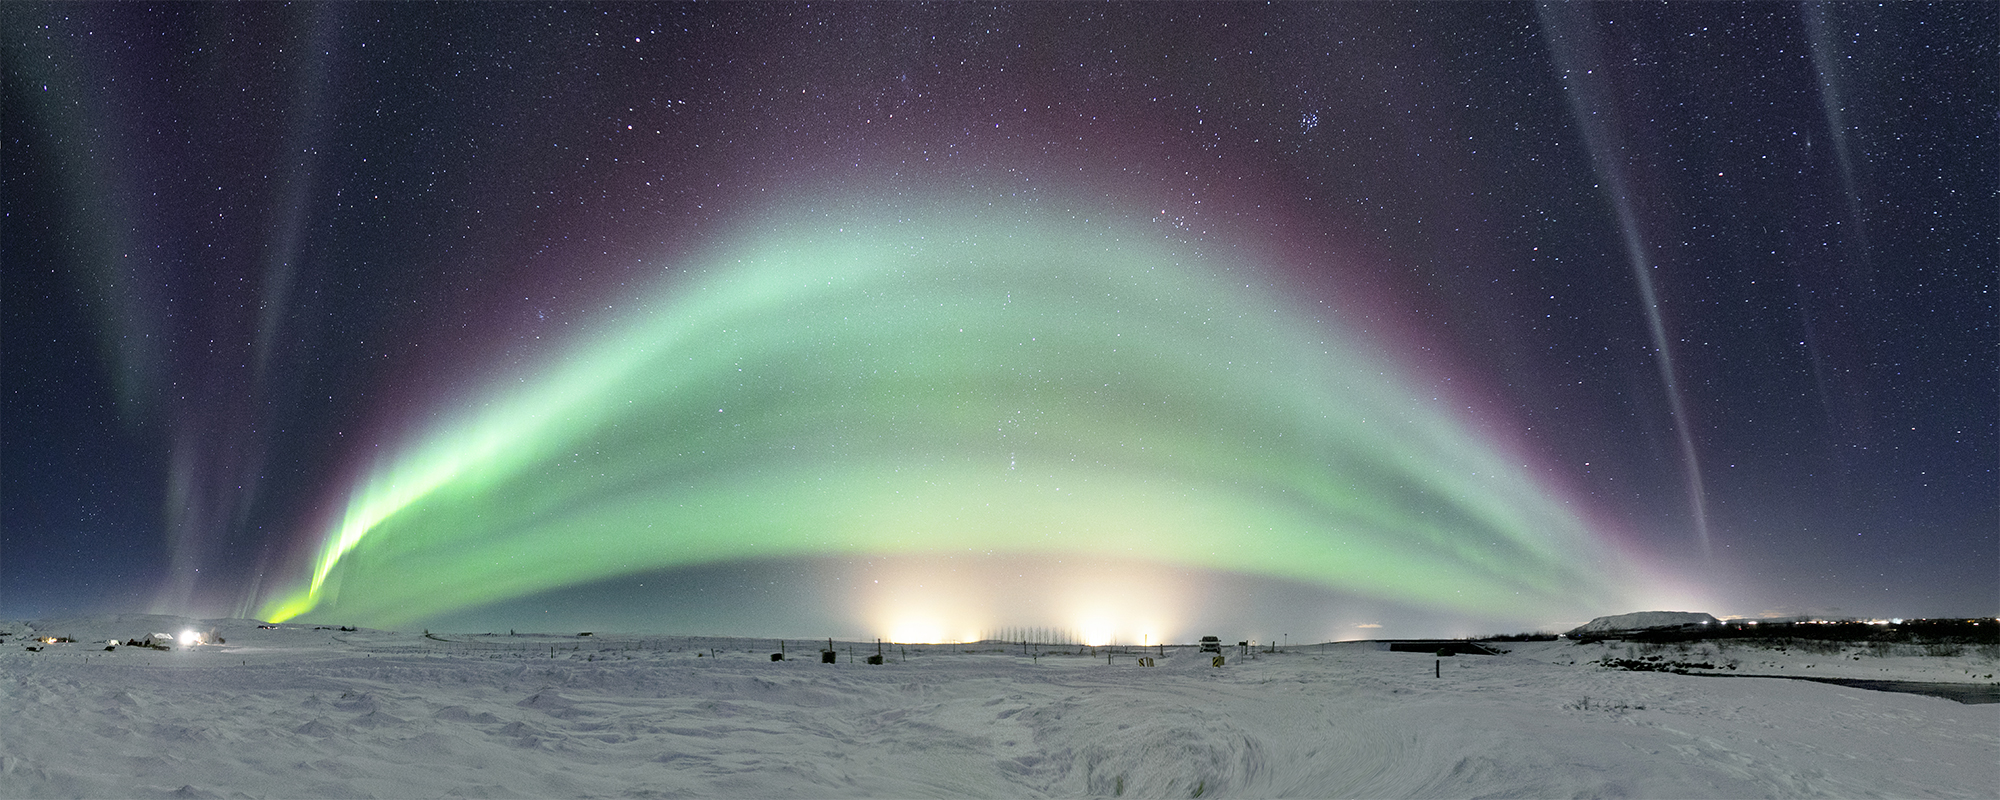 Mesmerizing Shots of Distant Galaxies and Aurorae Top the Astronomy Photographer of the Year Contest